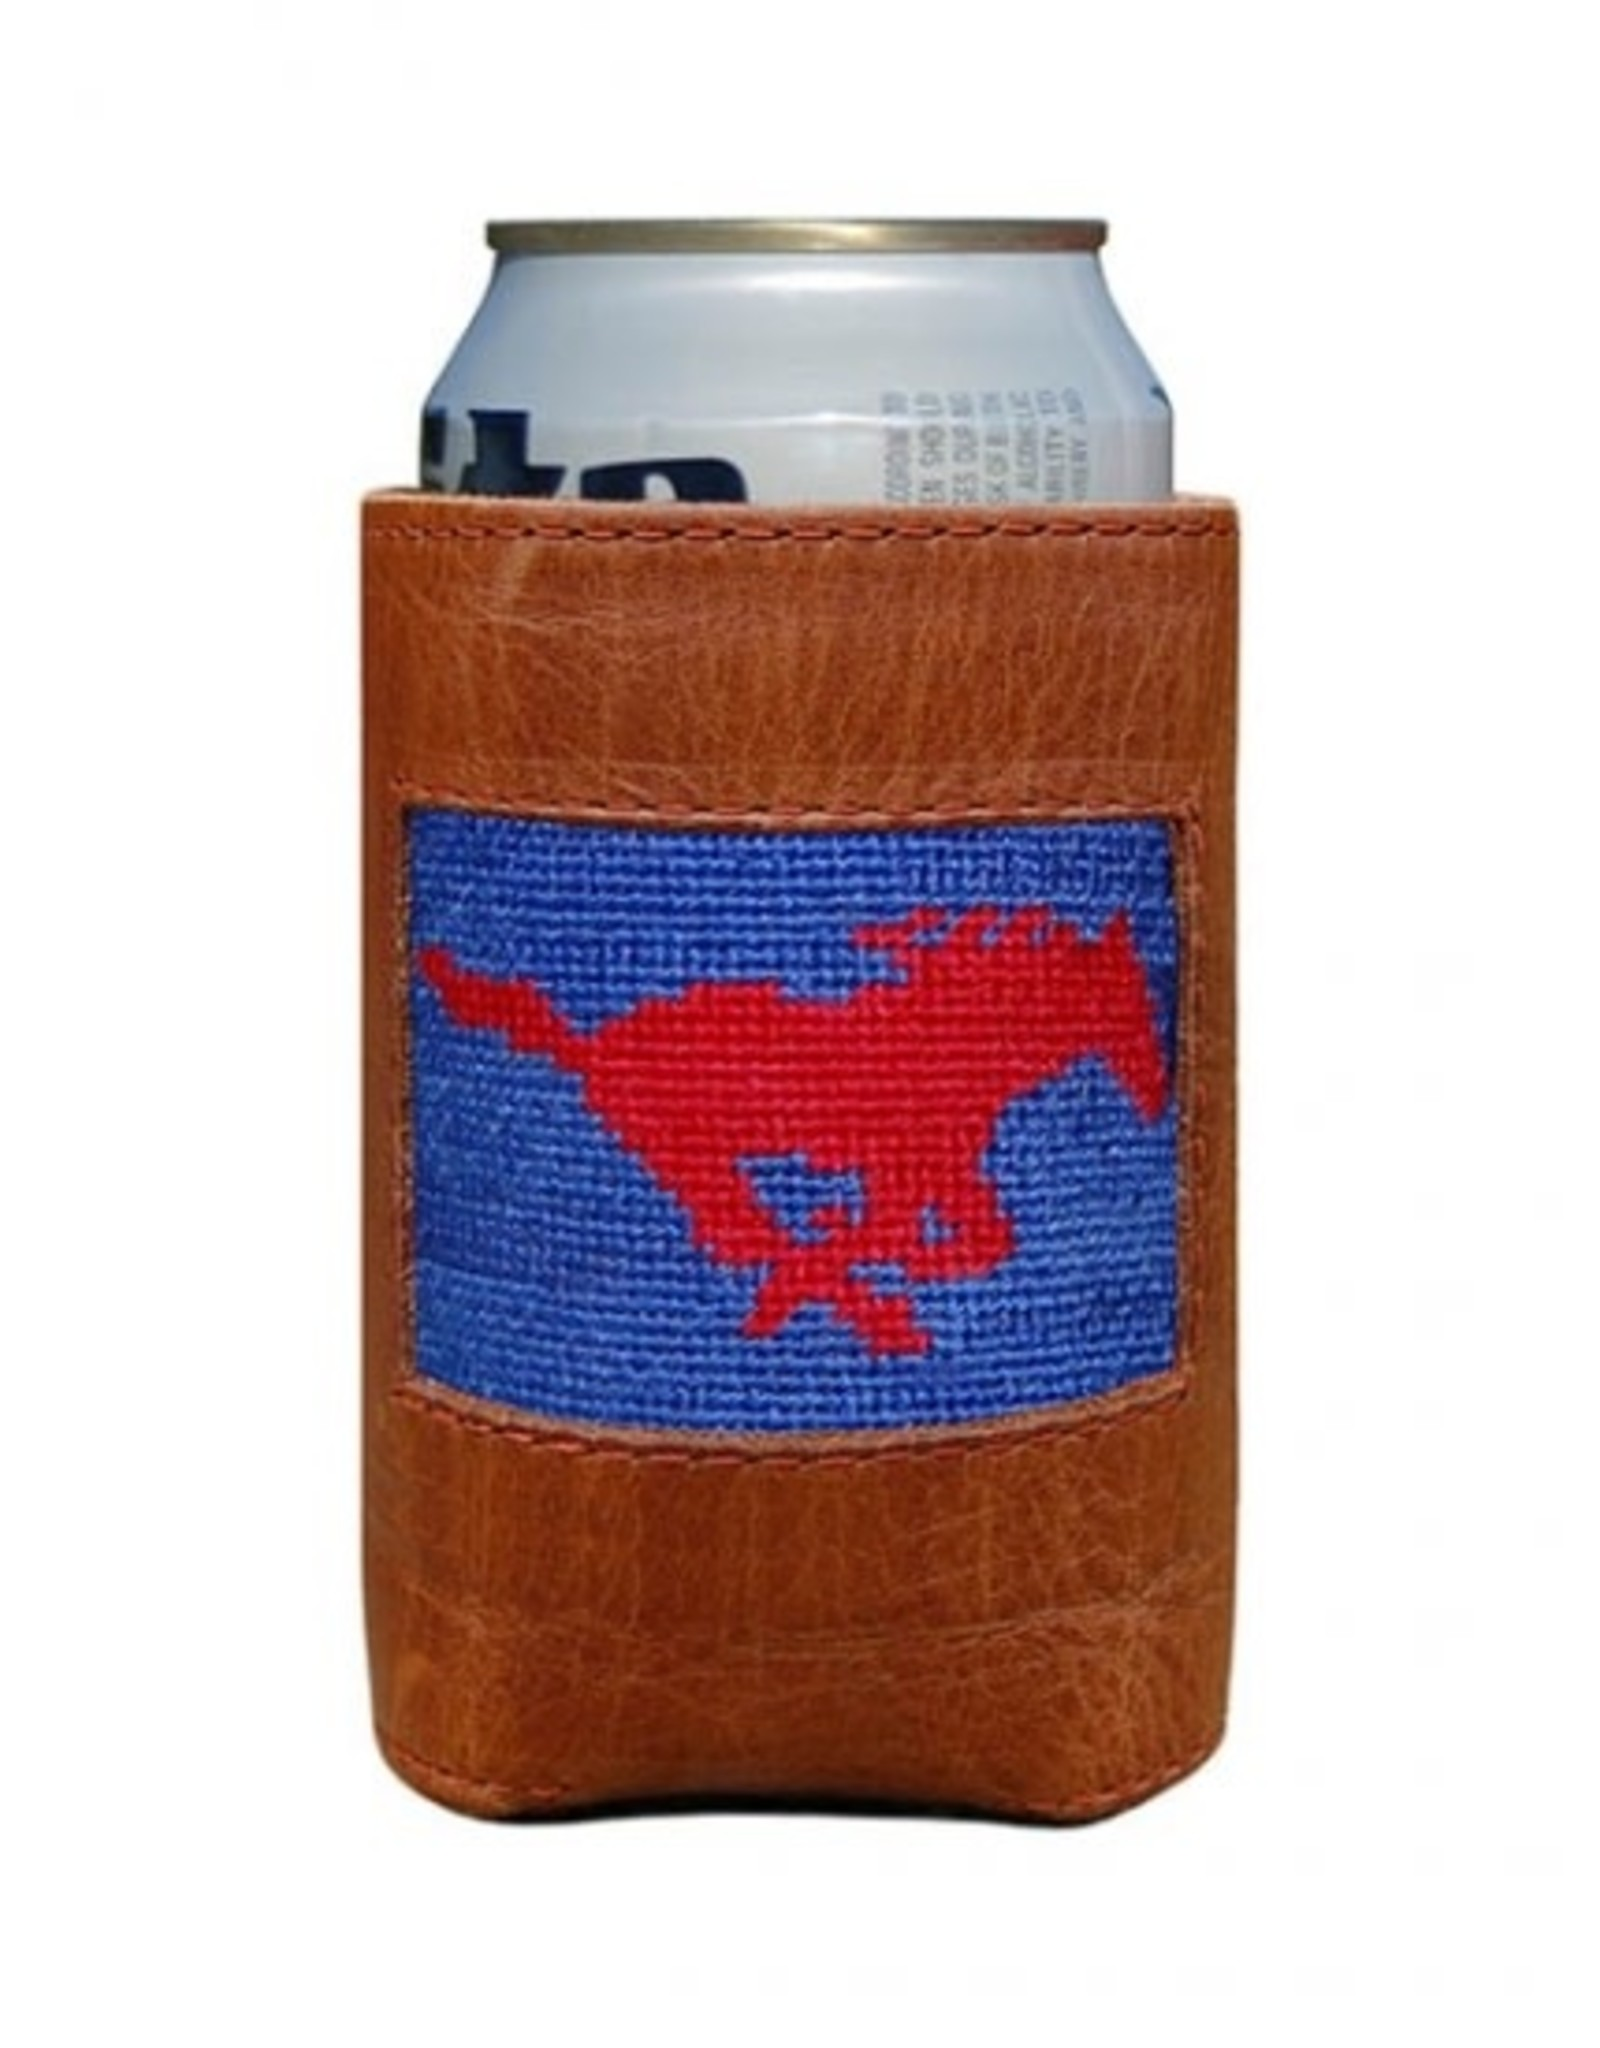 Smathers & Branson Smather's & Branson Collegiate Coozie  SMU